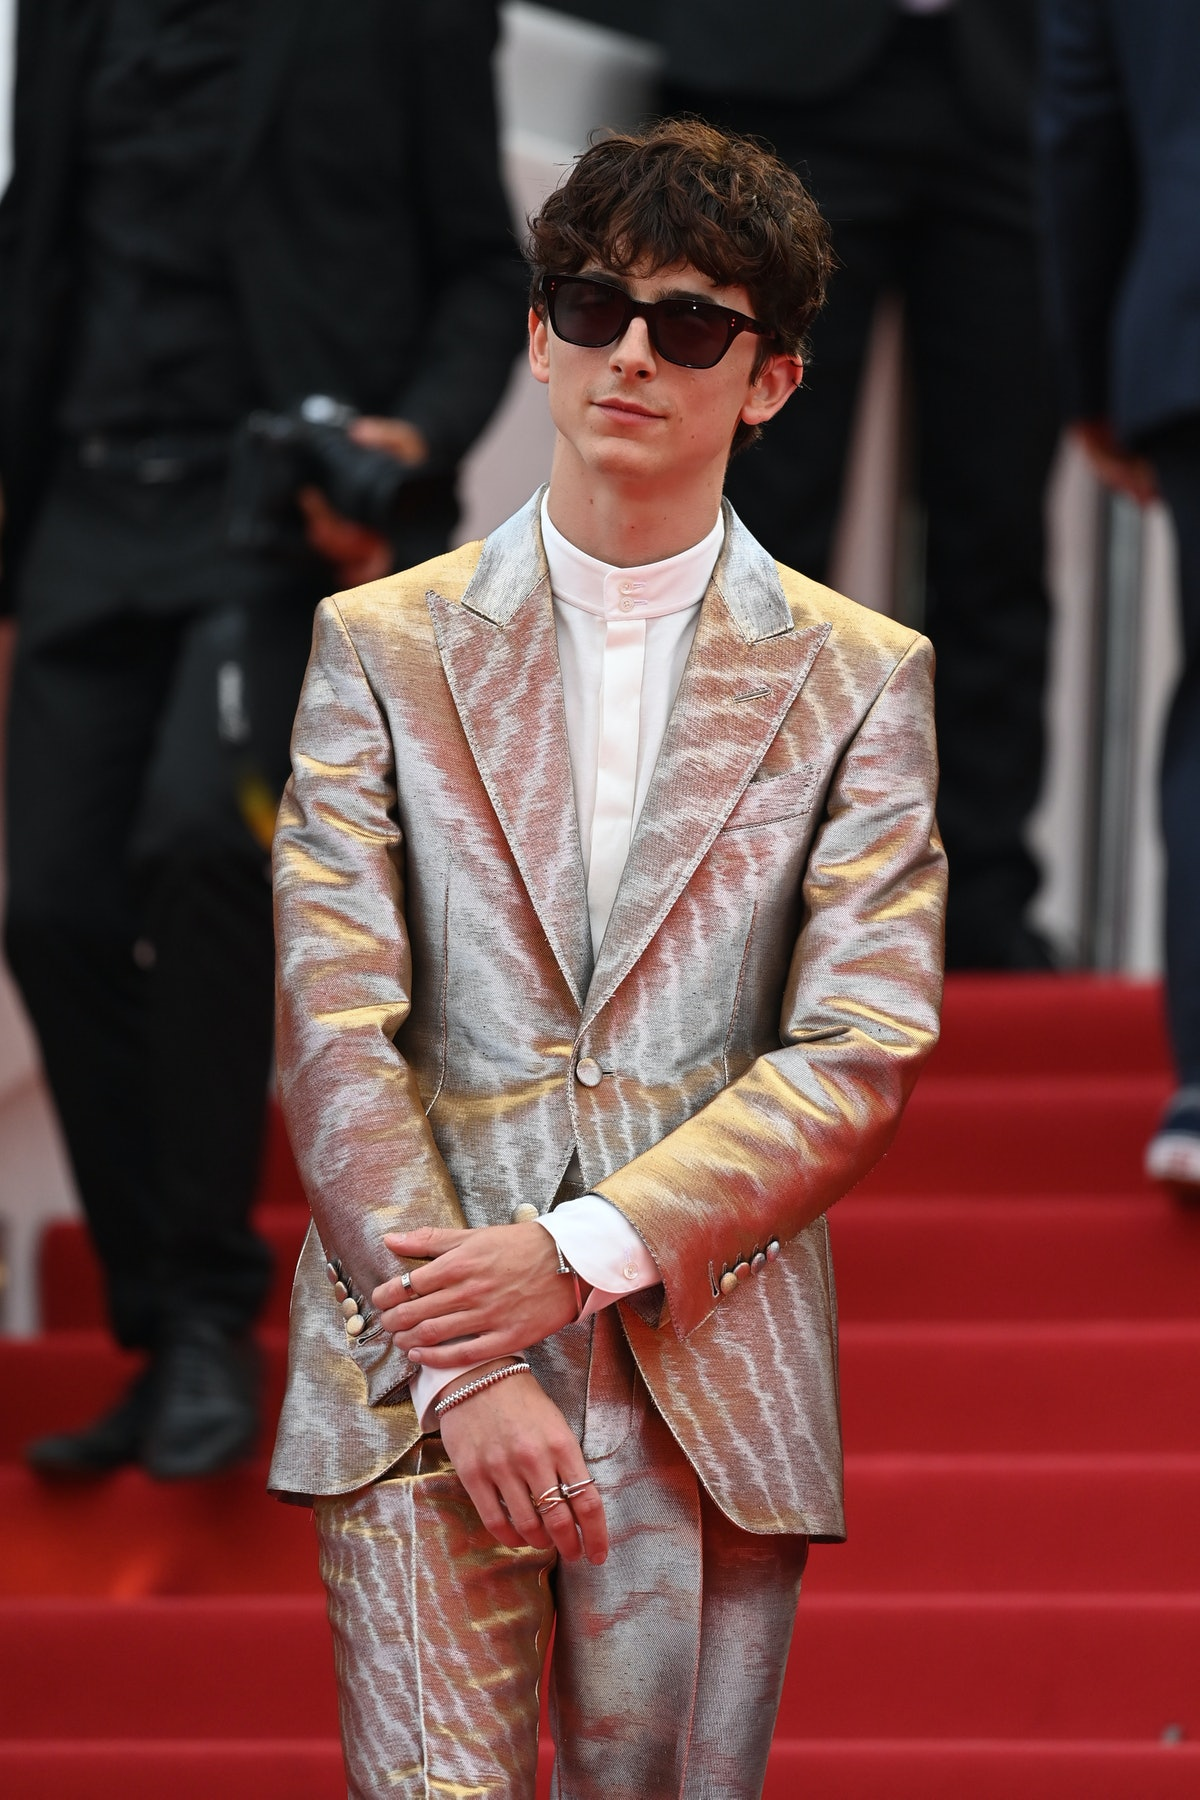 """CANNES, FRANCE - JULY 12: Timothée Chalamet attends the """"The French Dispatch"""" screening during the 74th annual Cannes Film Festival on July 12, 2021 in Cannes, France. (Photo by Kate Green/Getty Images)"""